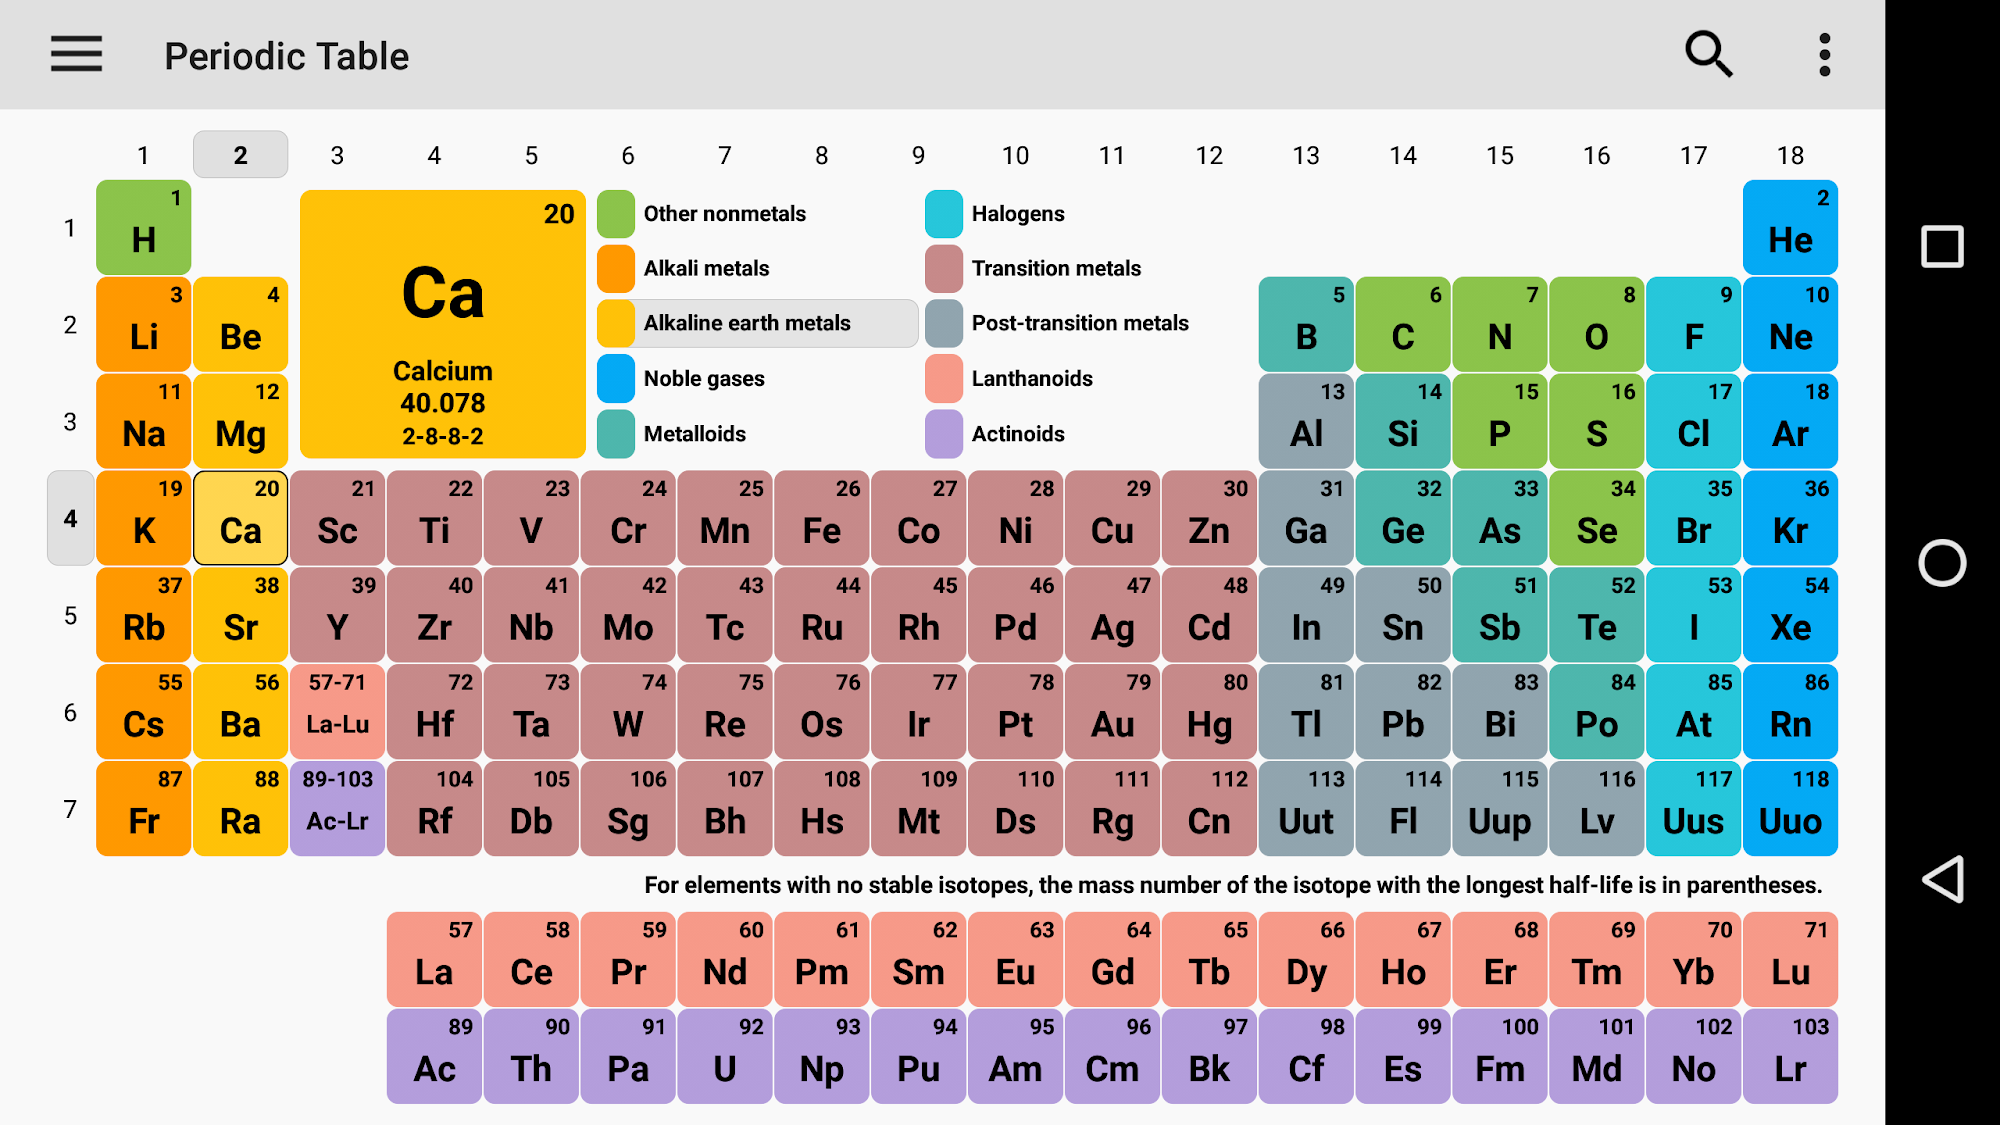 Periodic Table image #1